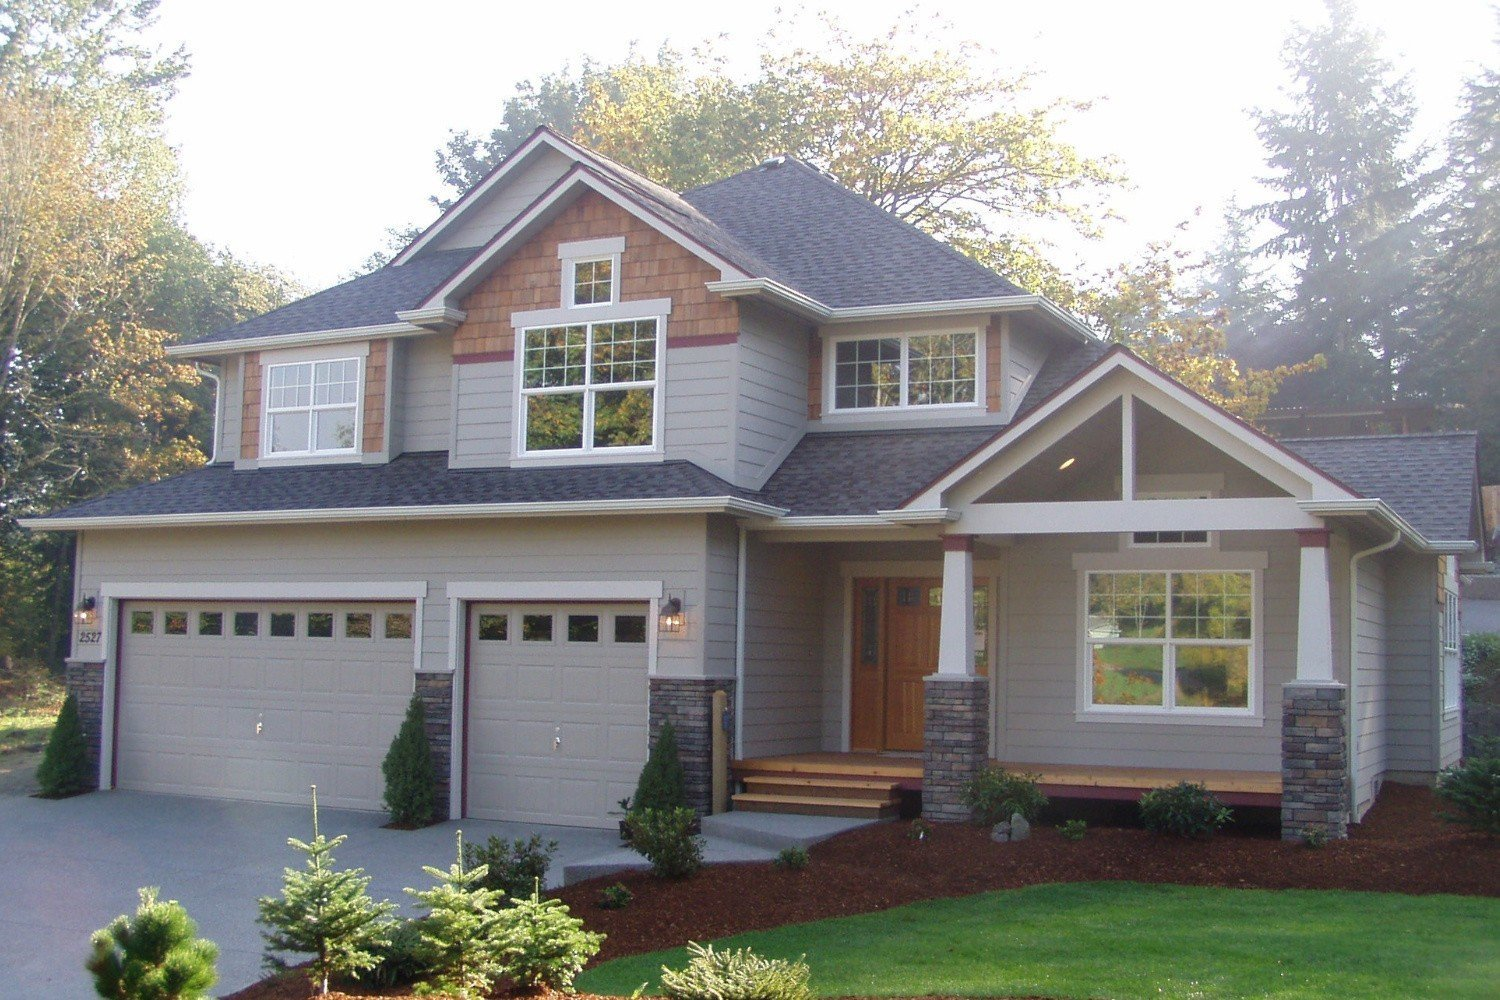 South Hill Home Home Builder Remodel Puyallup WA | Mike Schwartz Construction